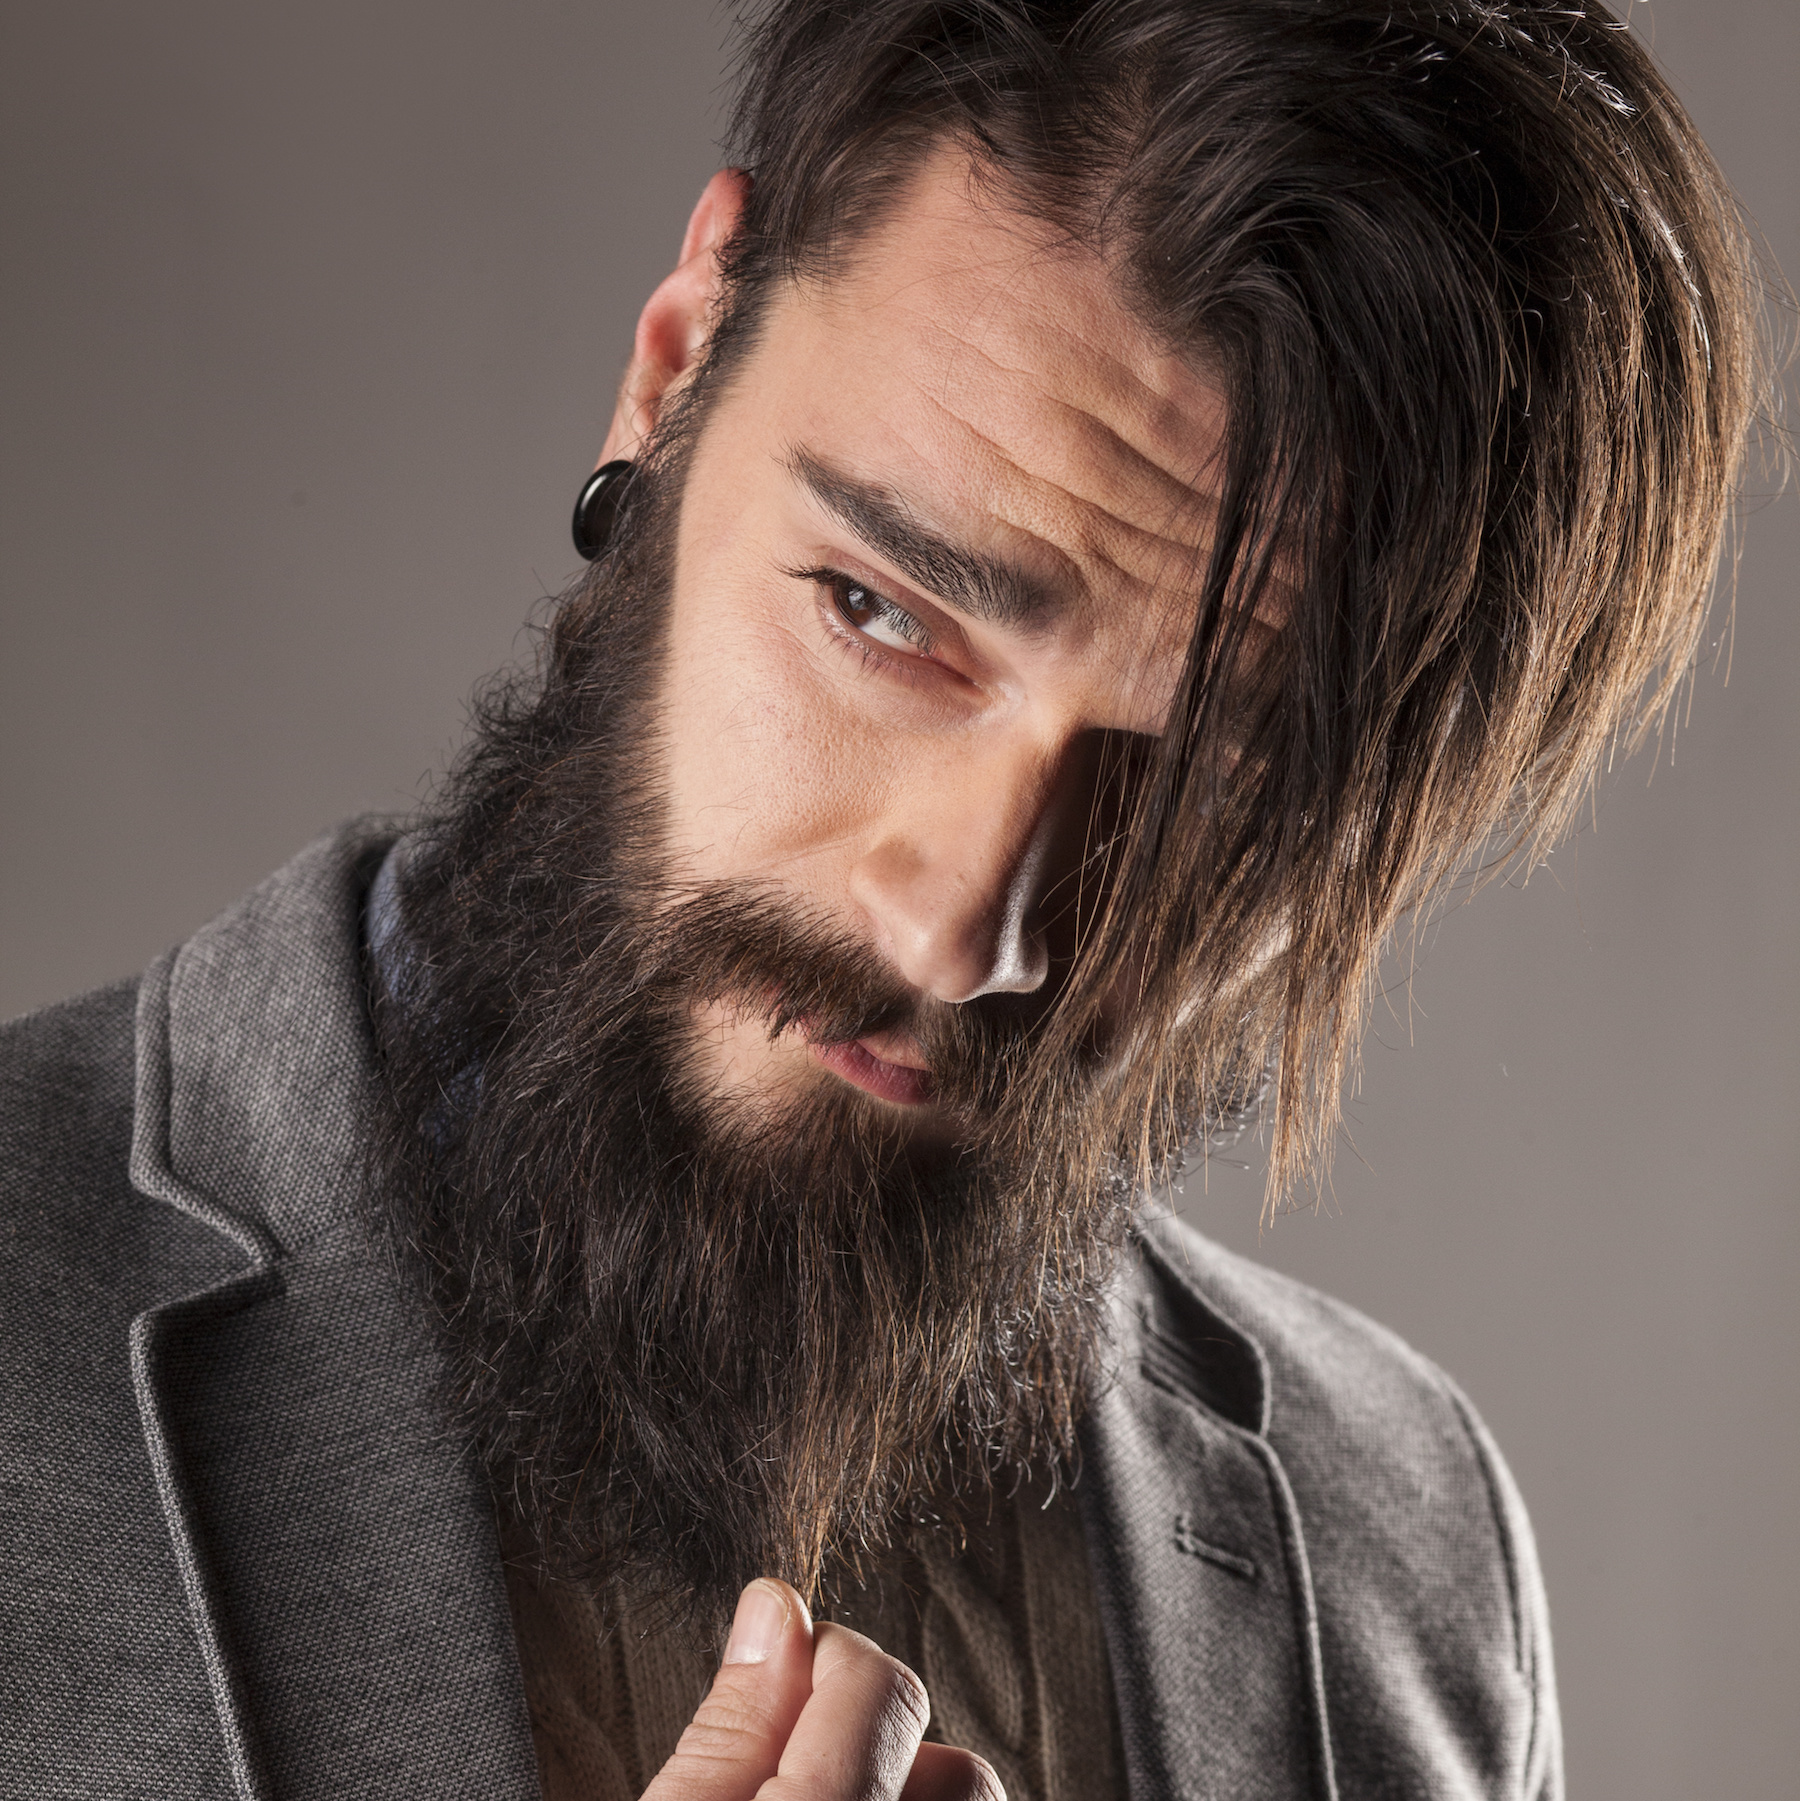 Beard Care Tips For Men Archives - Page 3 of 11